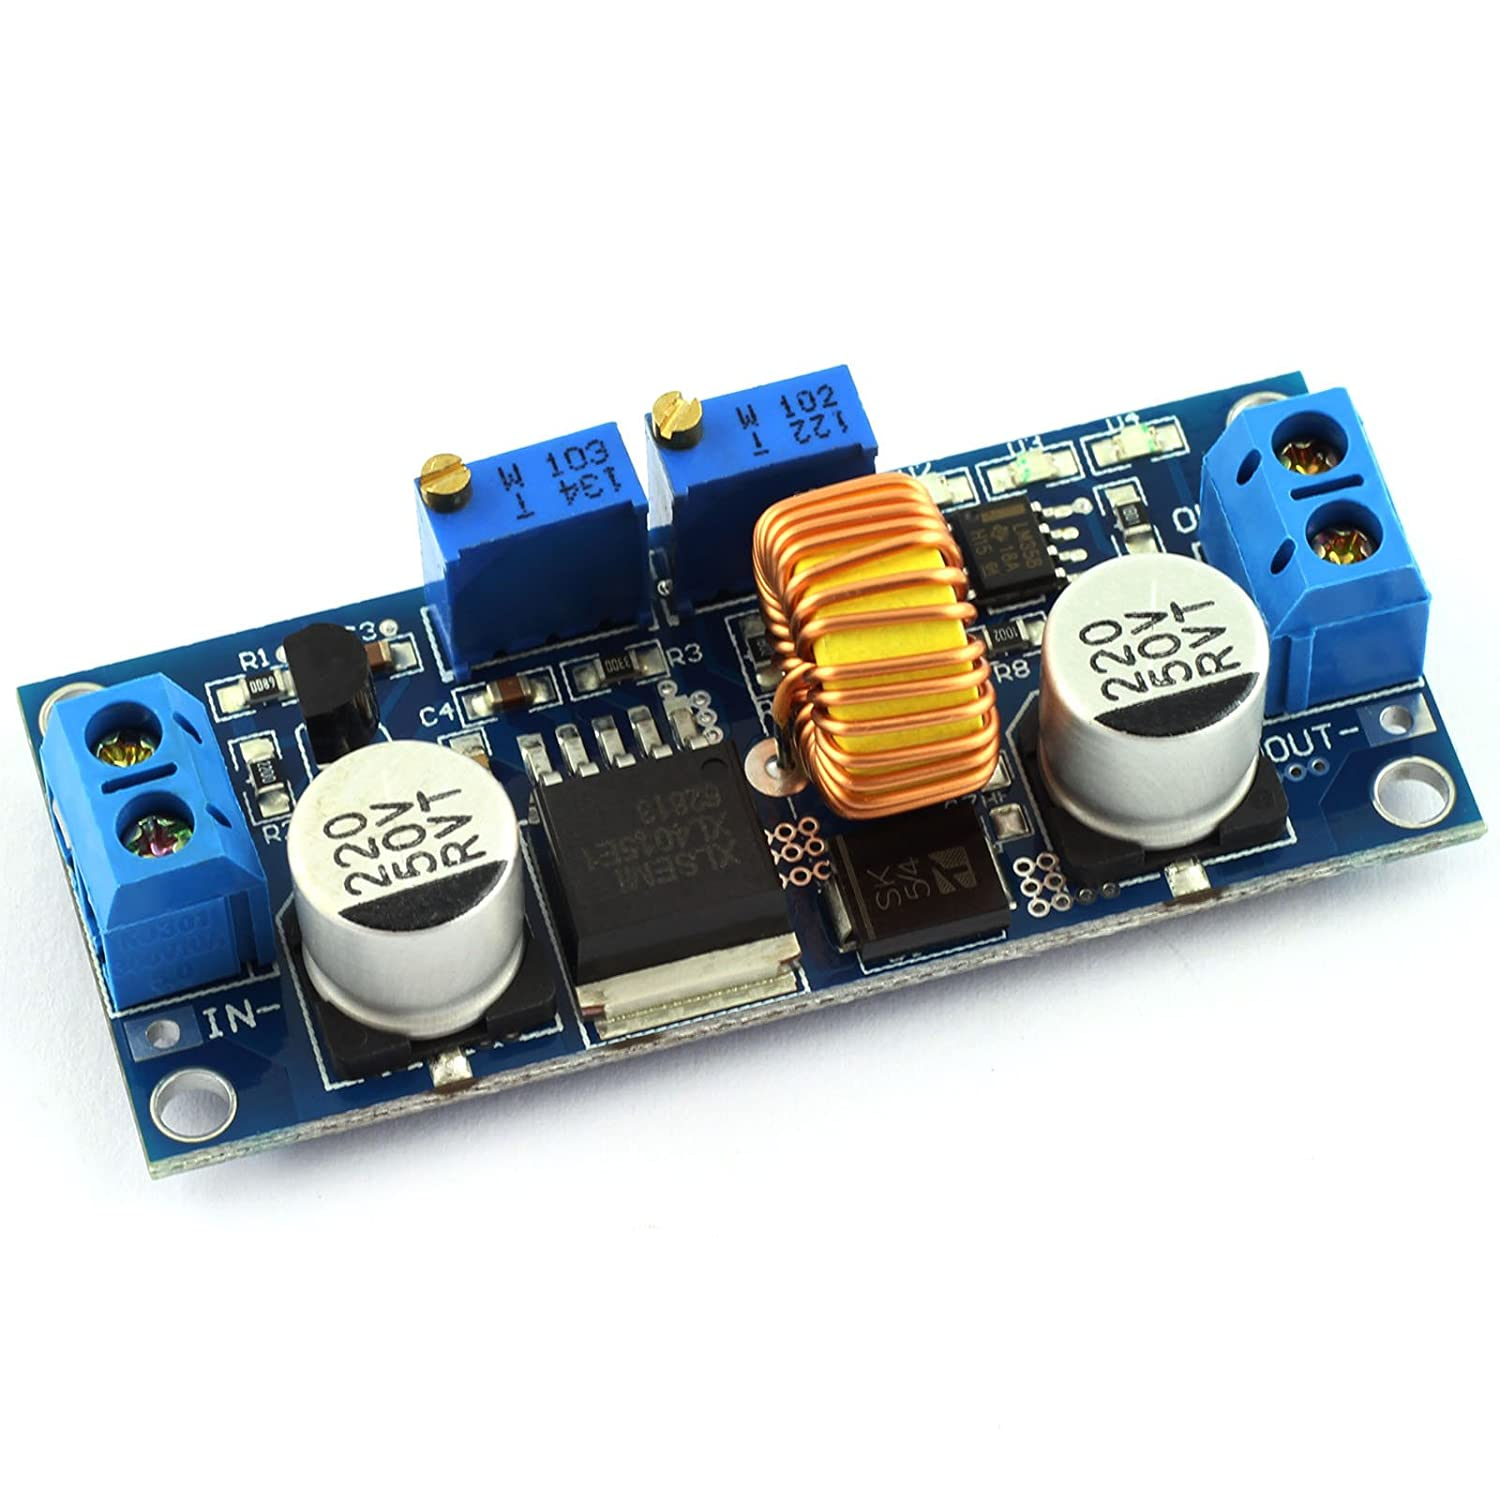 Circuit Power Additionally 48v To 12v Dc Converter In Dzs Elec Step Down Constant Current Regulator Module 4 38v Input 125 36v Output Adjustable Large 5a 75w For Charging